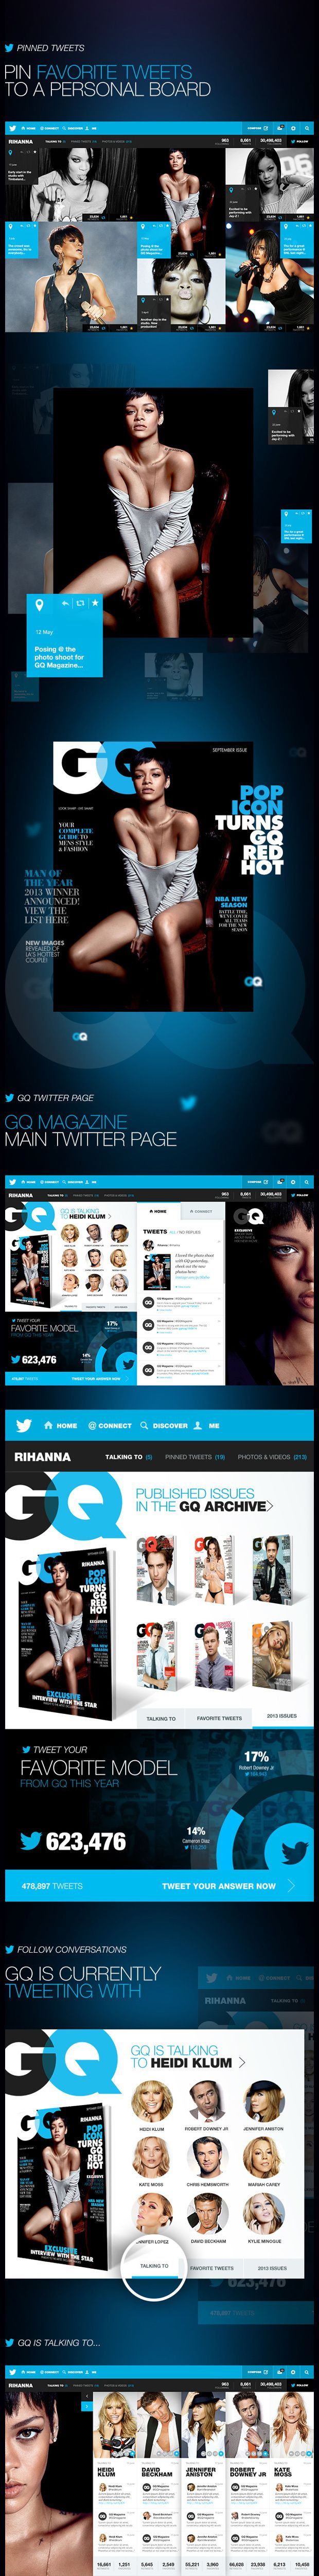 Twitter 5 Incredible Twitter Redesign | Concept